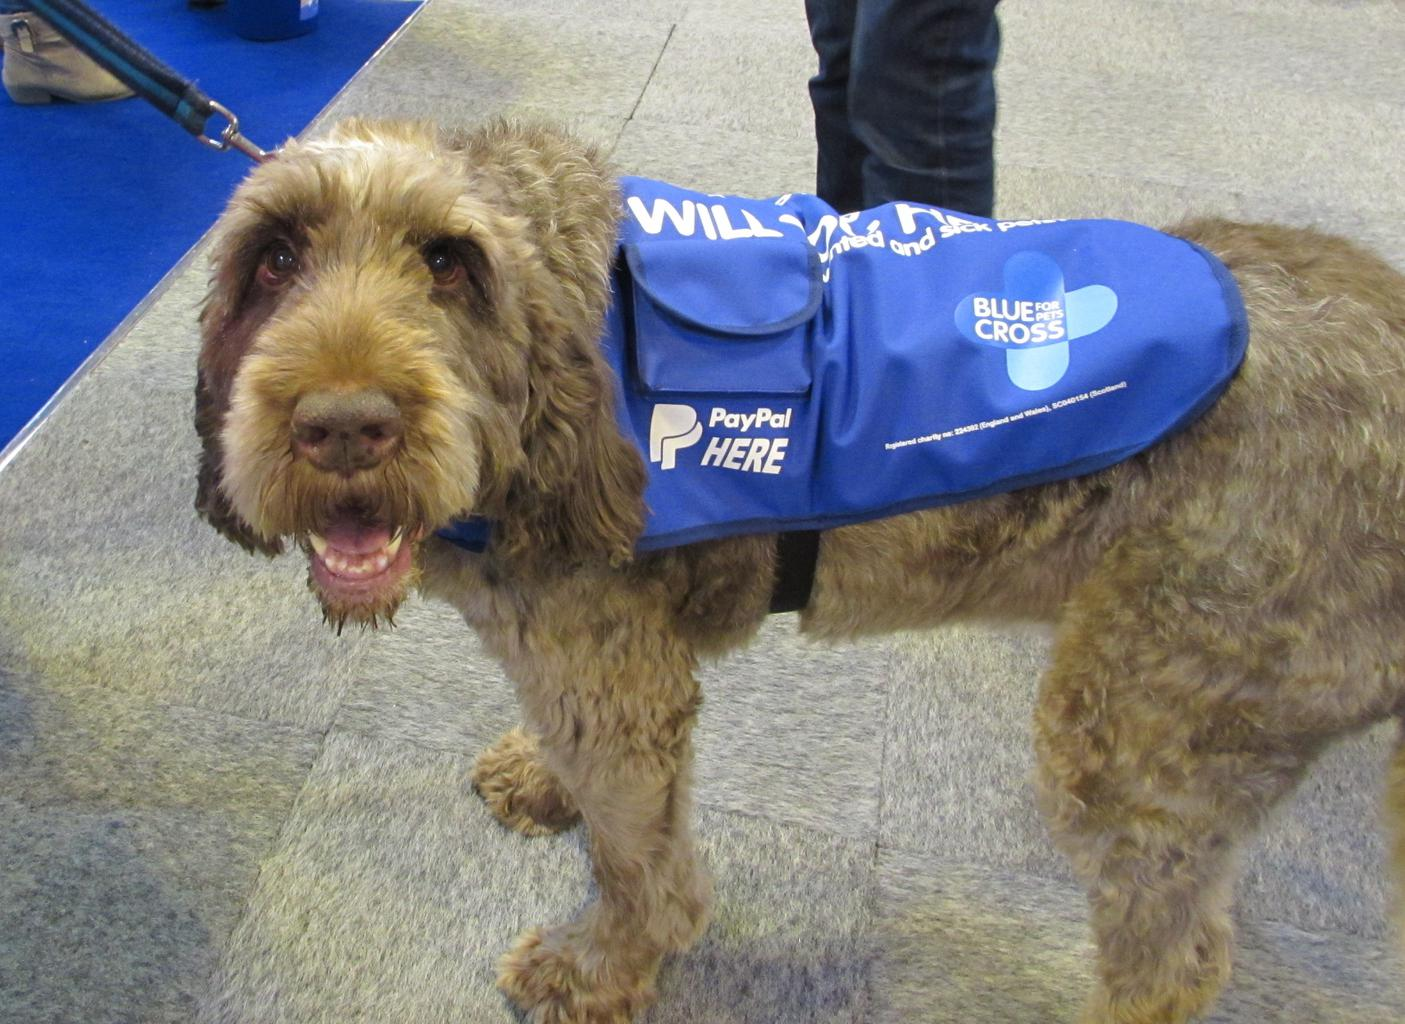 Italian Spinone Gracie raising money for The Blue Cross. Tags: charity fund raising Italian Spinone PayPal The Blue Cross